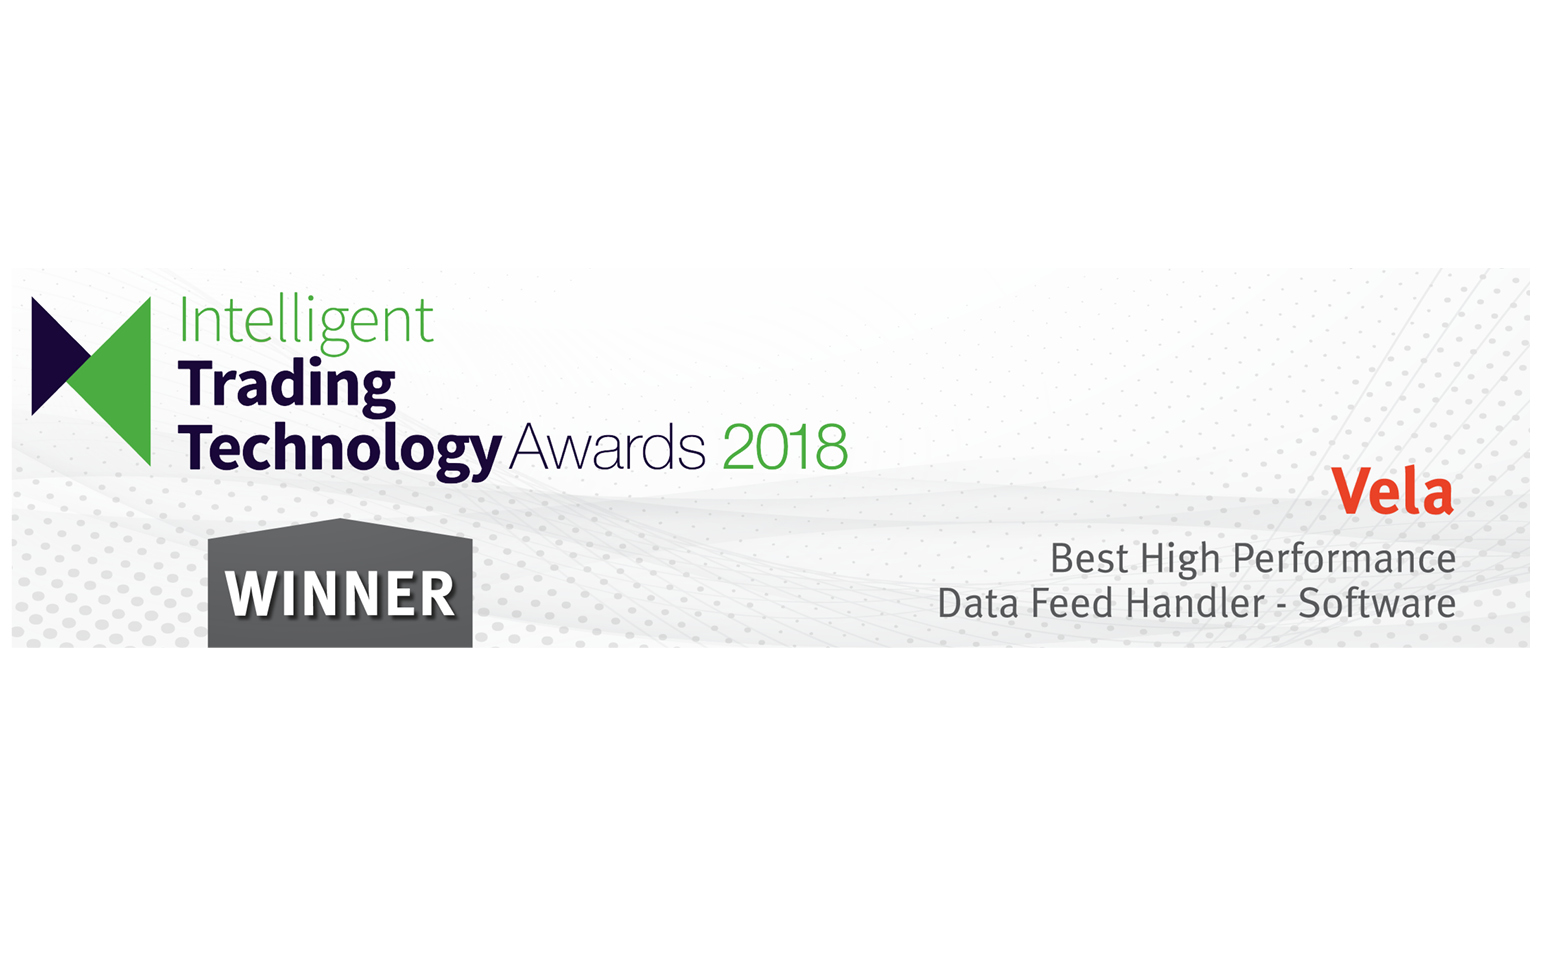 Best High Performance Data Feed Handler - Software